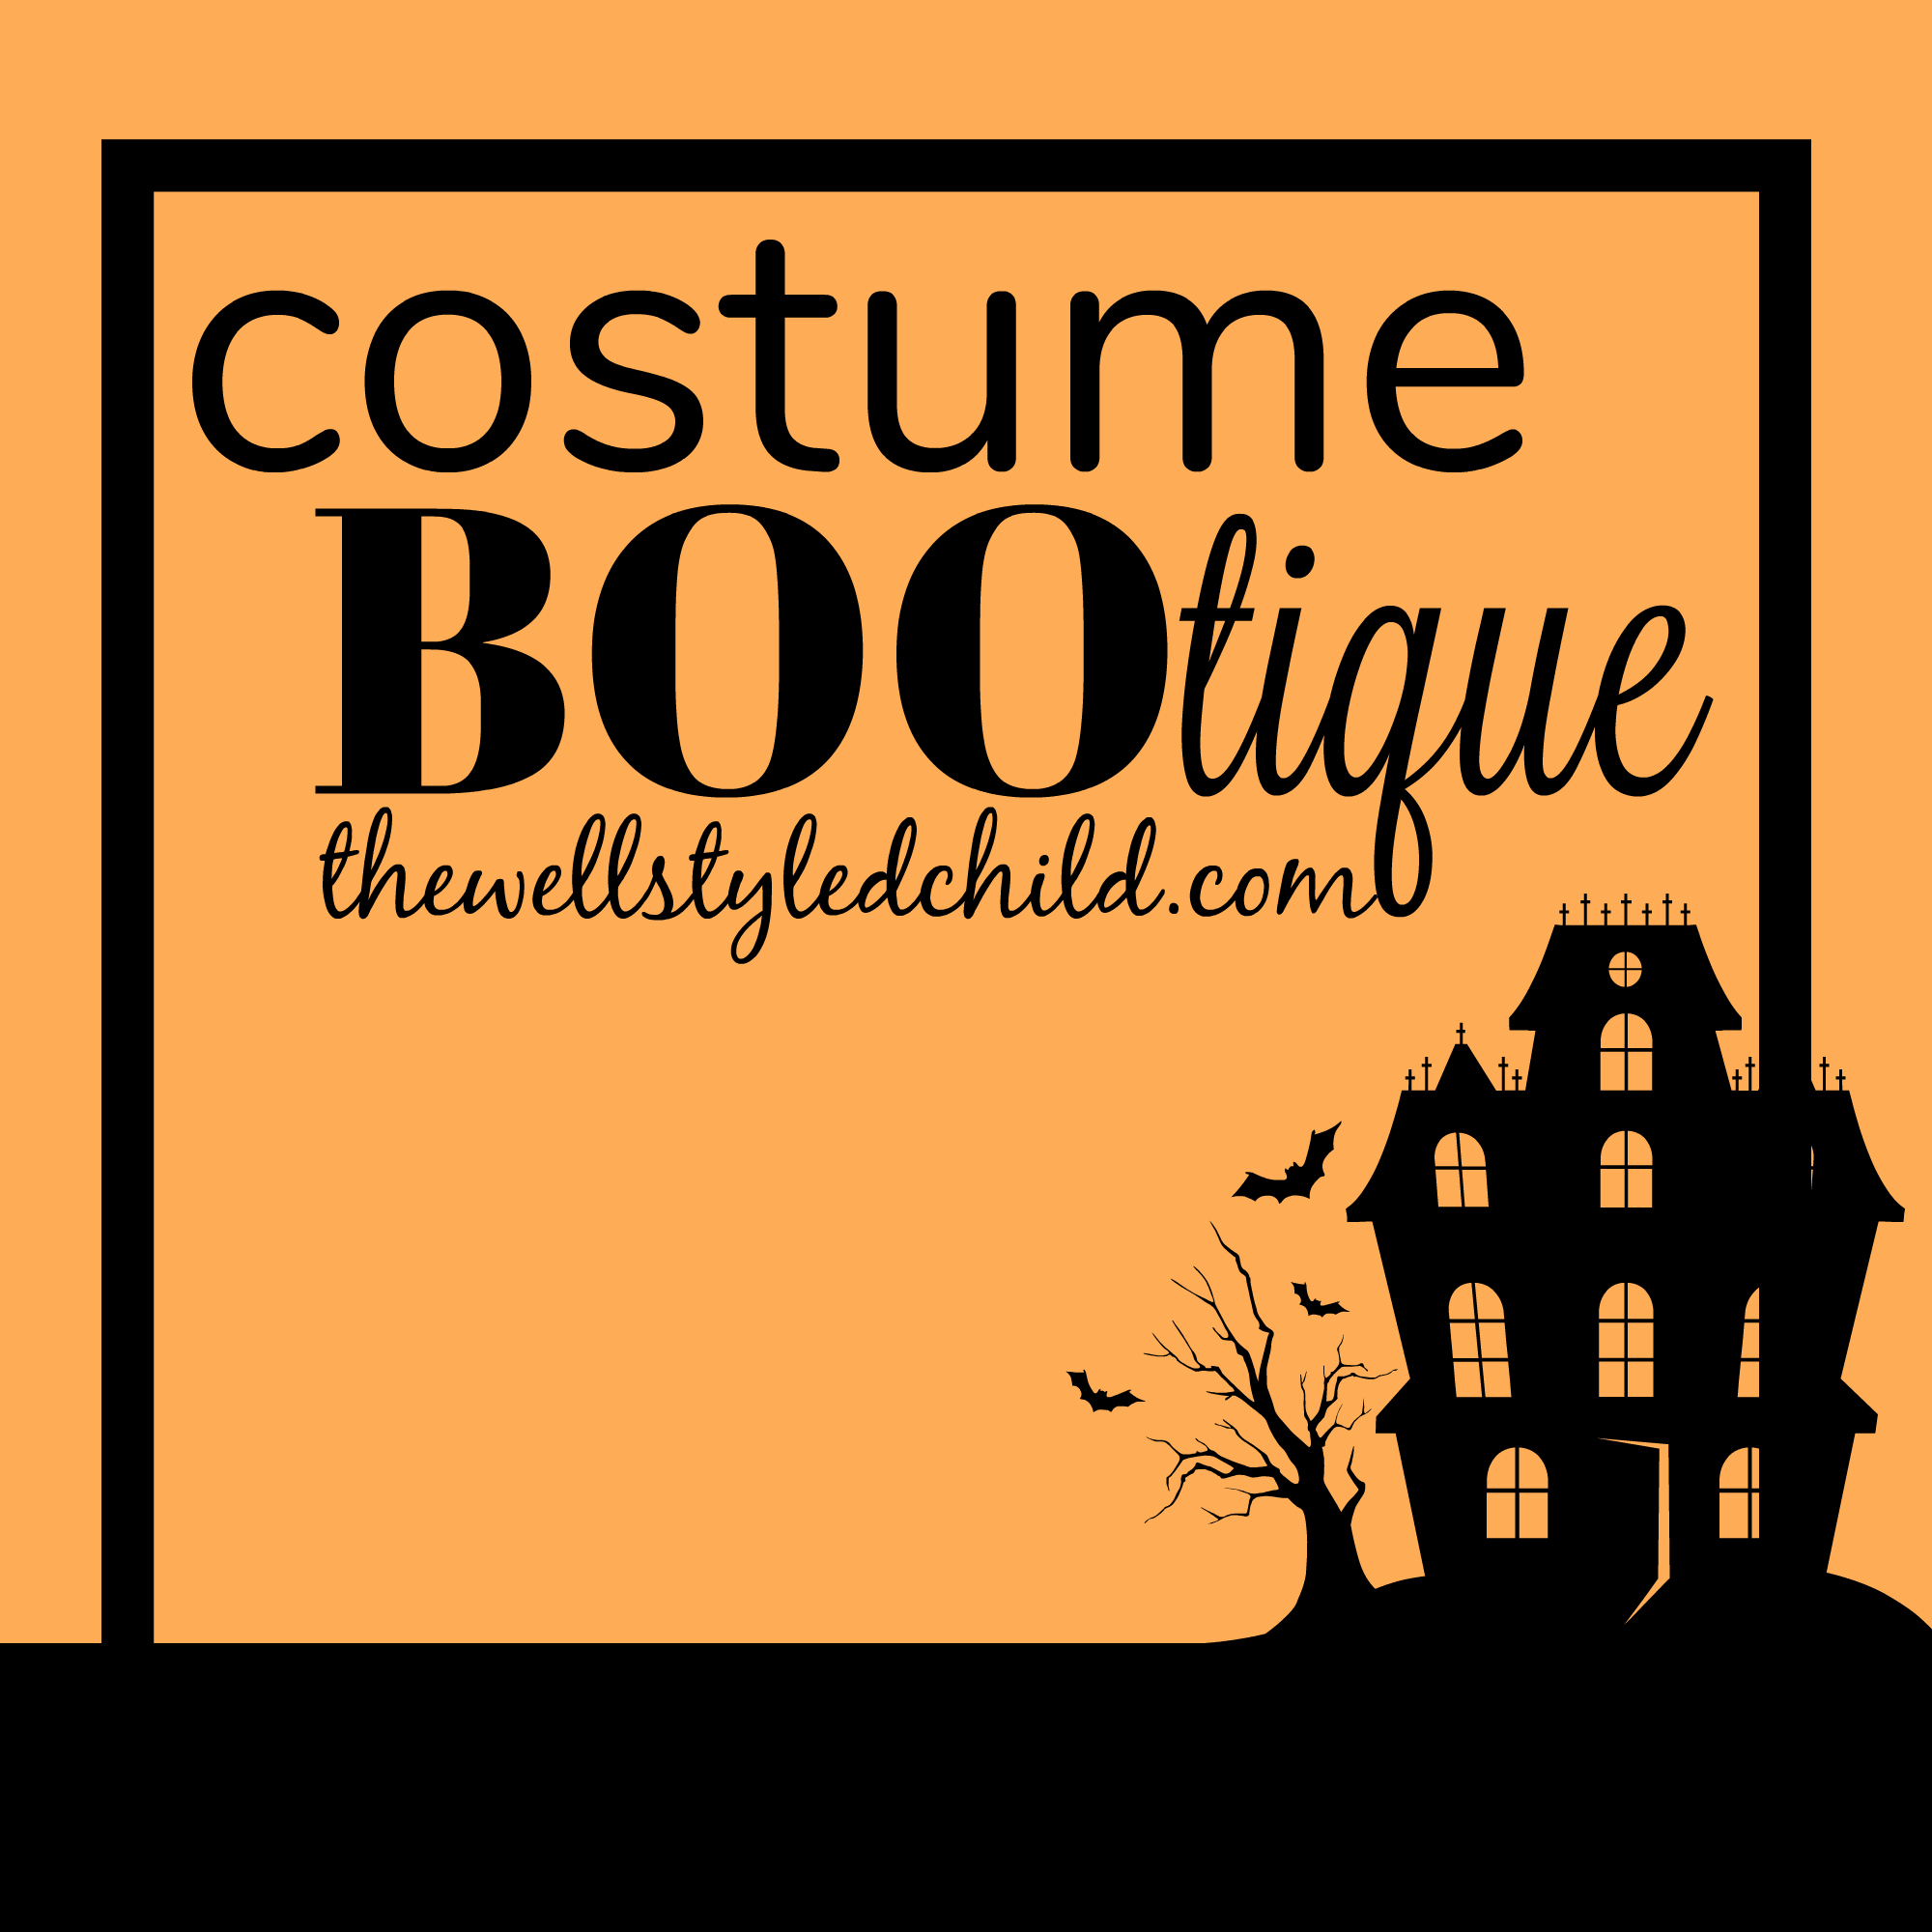 Costume BOOtique blog cover.jpg